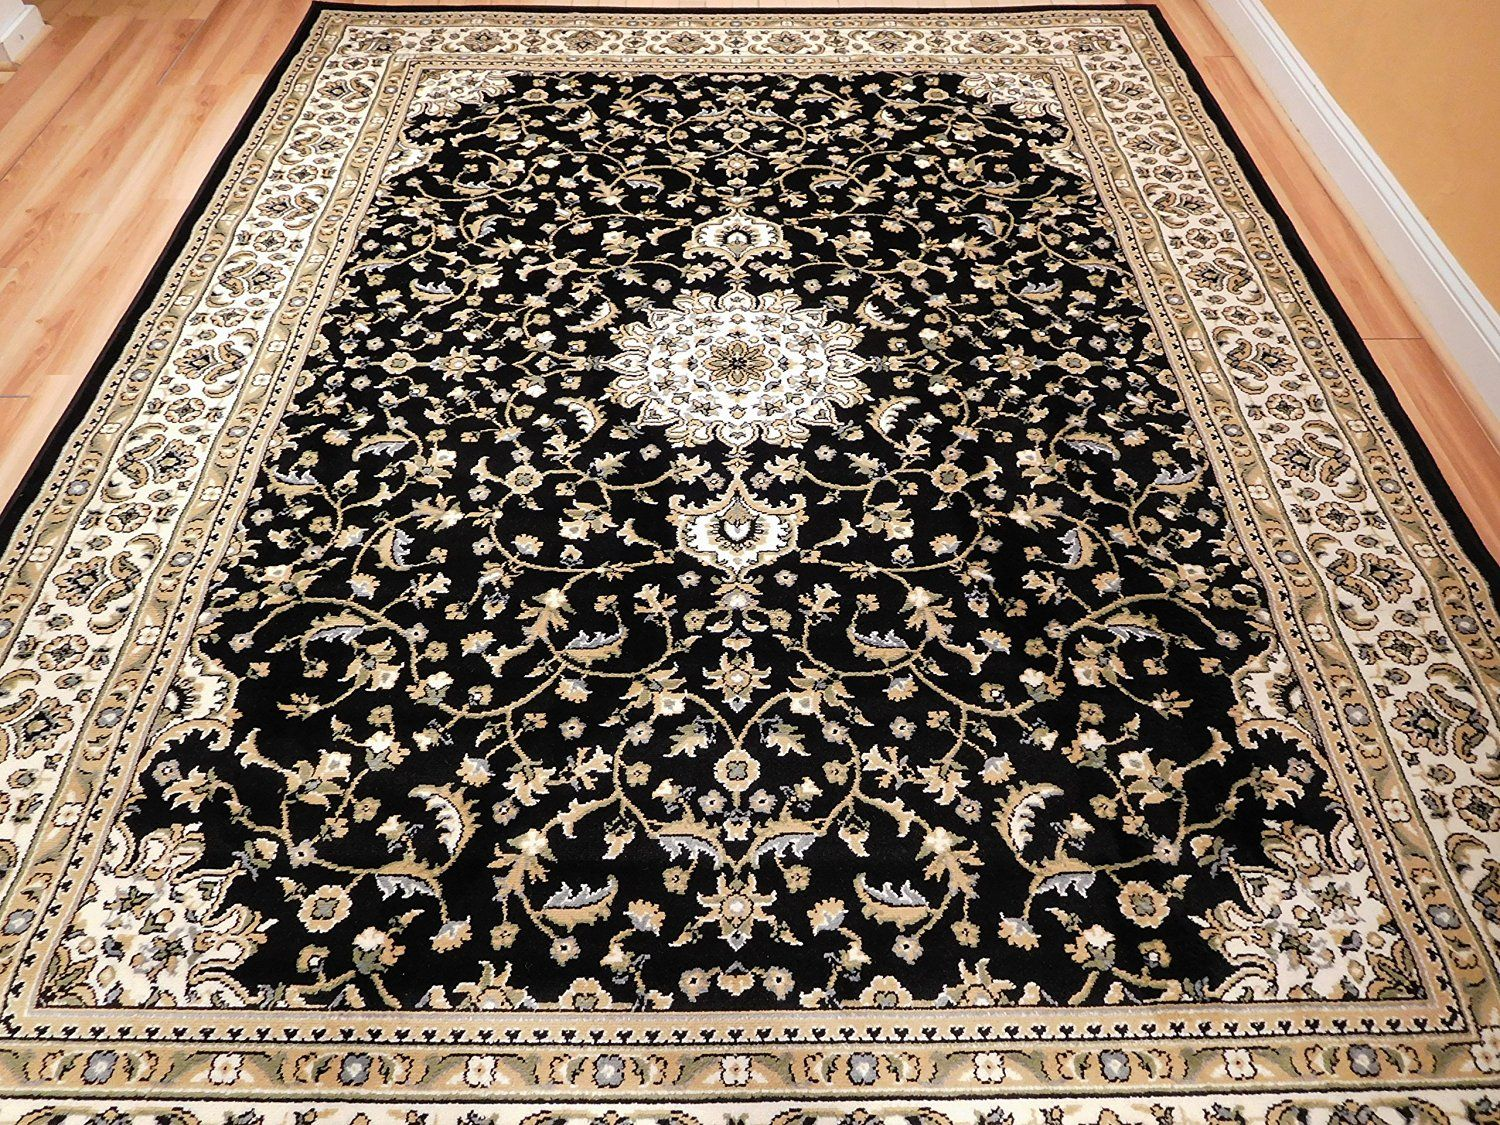 Amazon New Traditional Rugs Medallion 8x10 Area Clearance Black Cream Beige Green